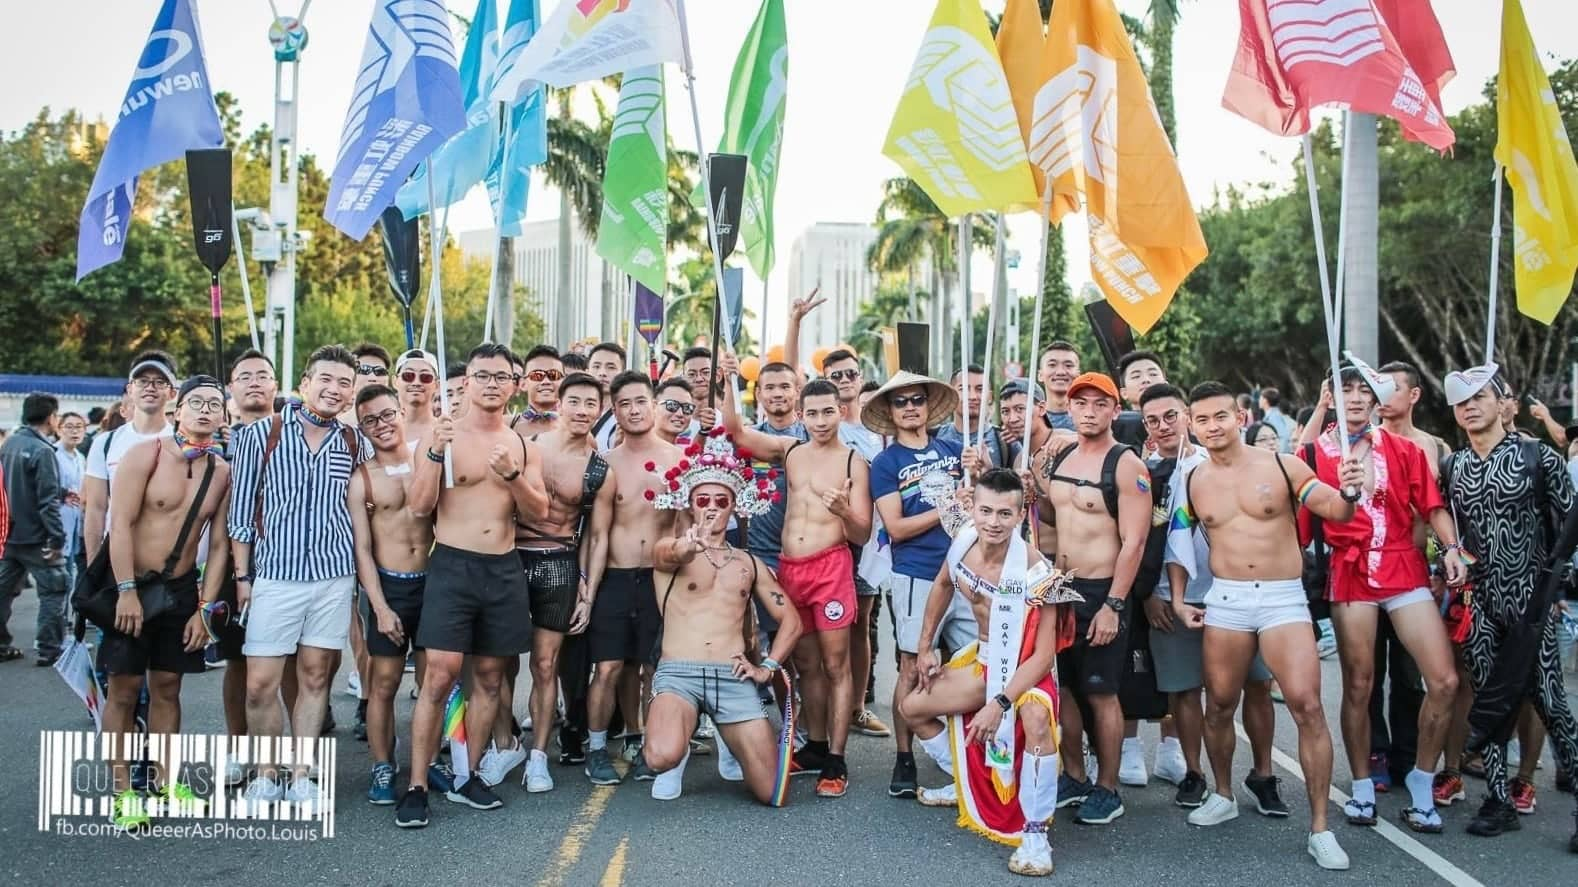 some of the best gay parties in the world